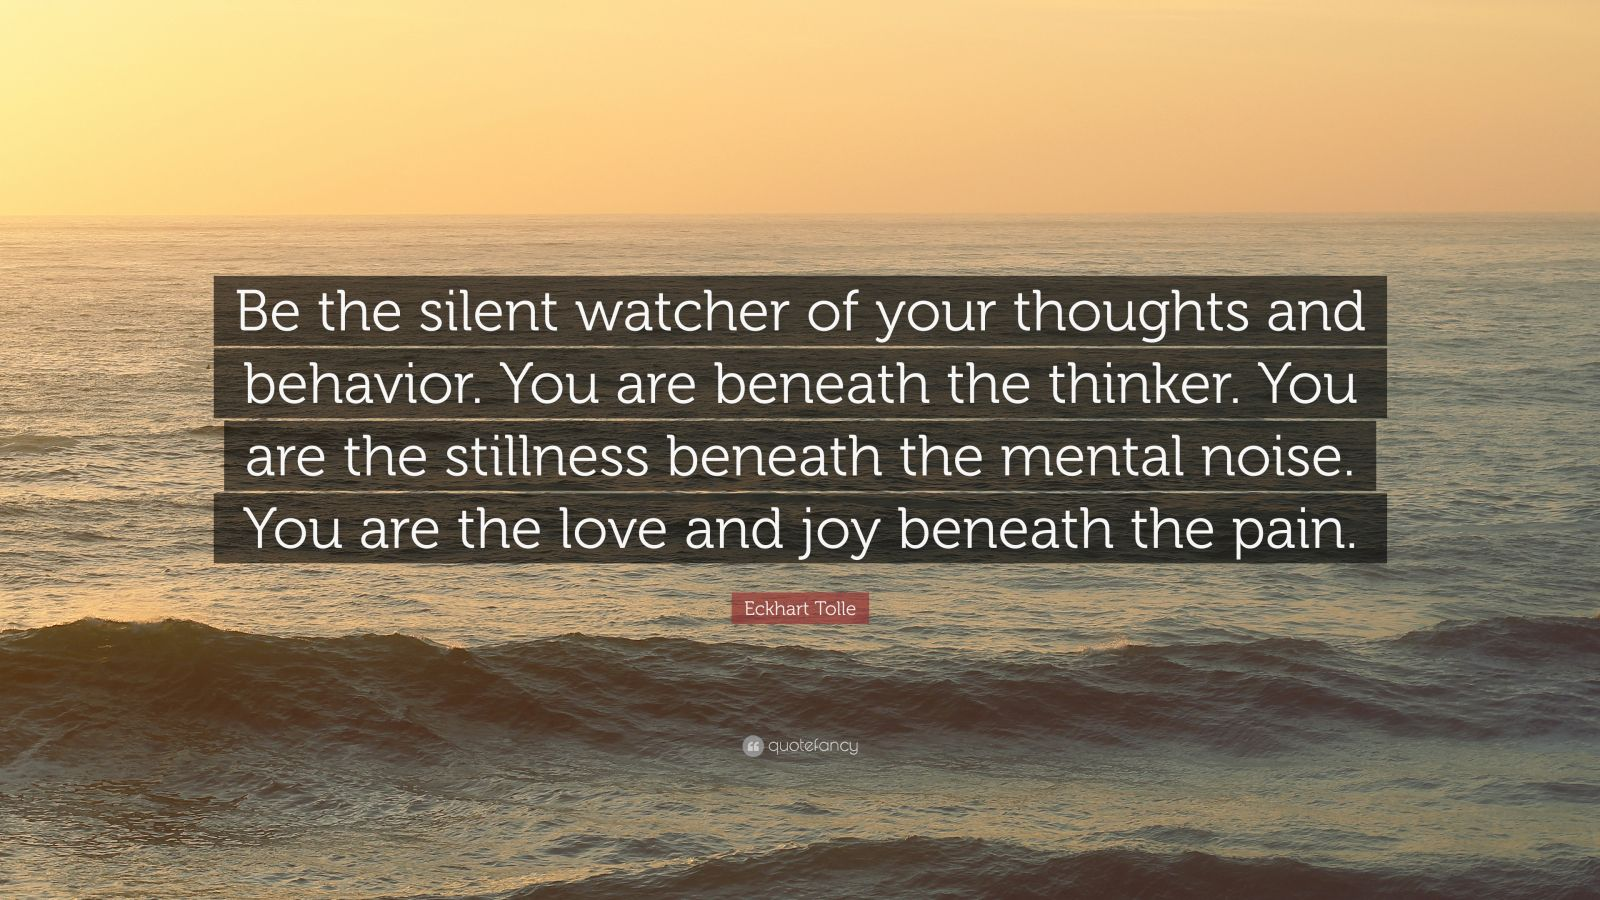 """Eckhart Tolle Quote: """"Be the silent watcher of your thoughts and behavior. You are beneath the thinker. You are the stillness beneath the mental noise. You are the love and joy beneath the pain."""""""